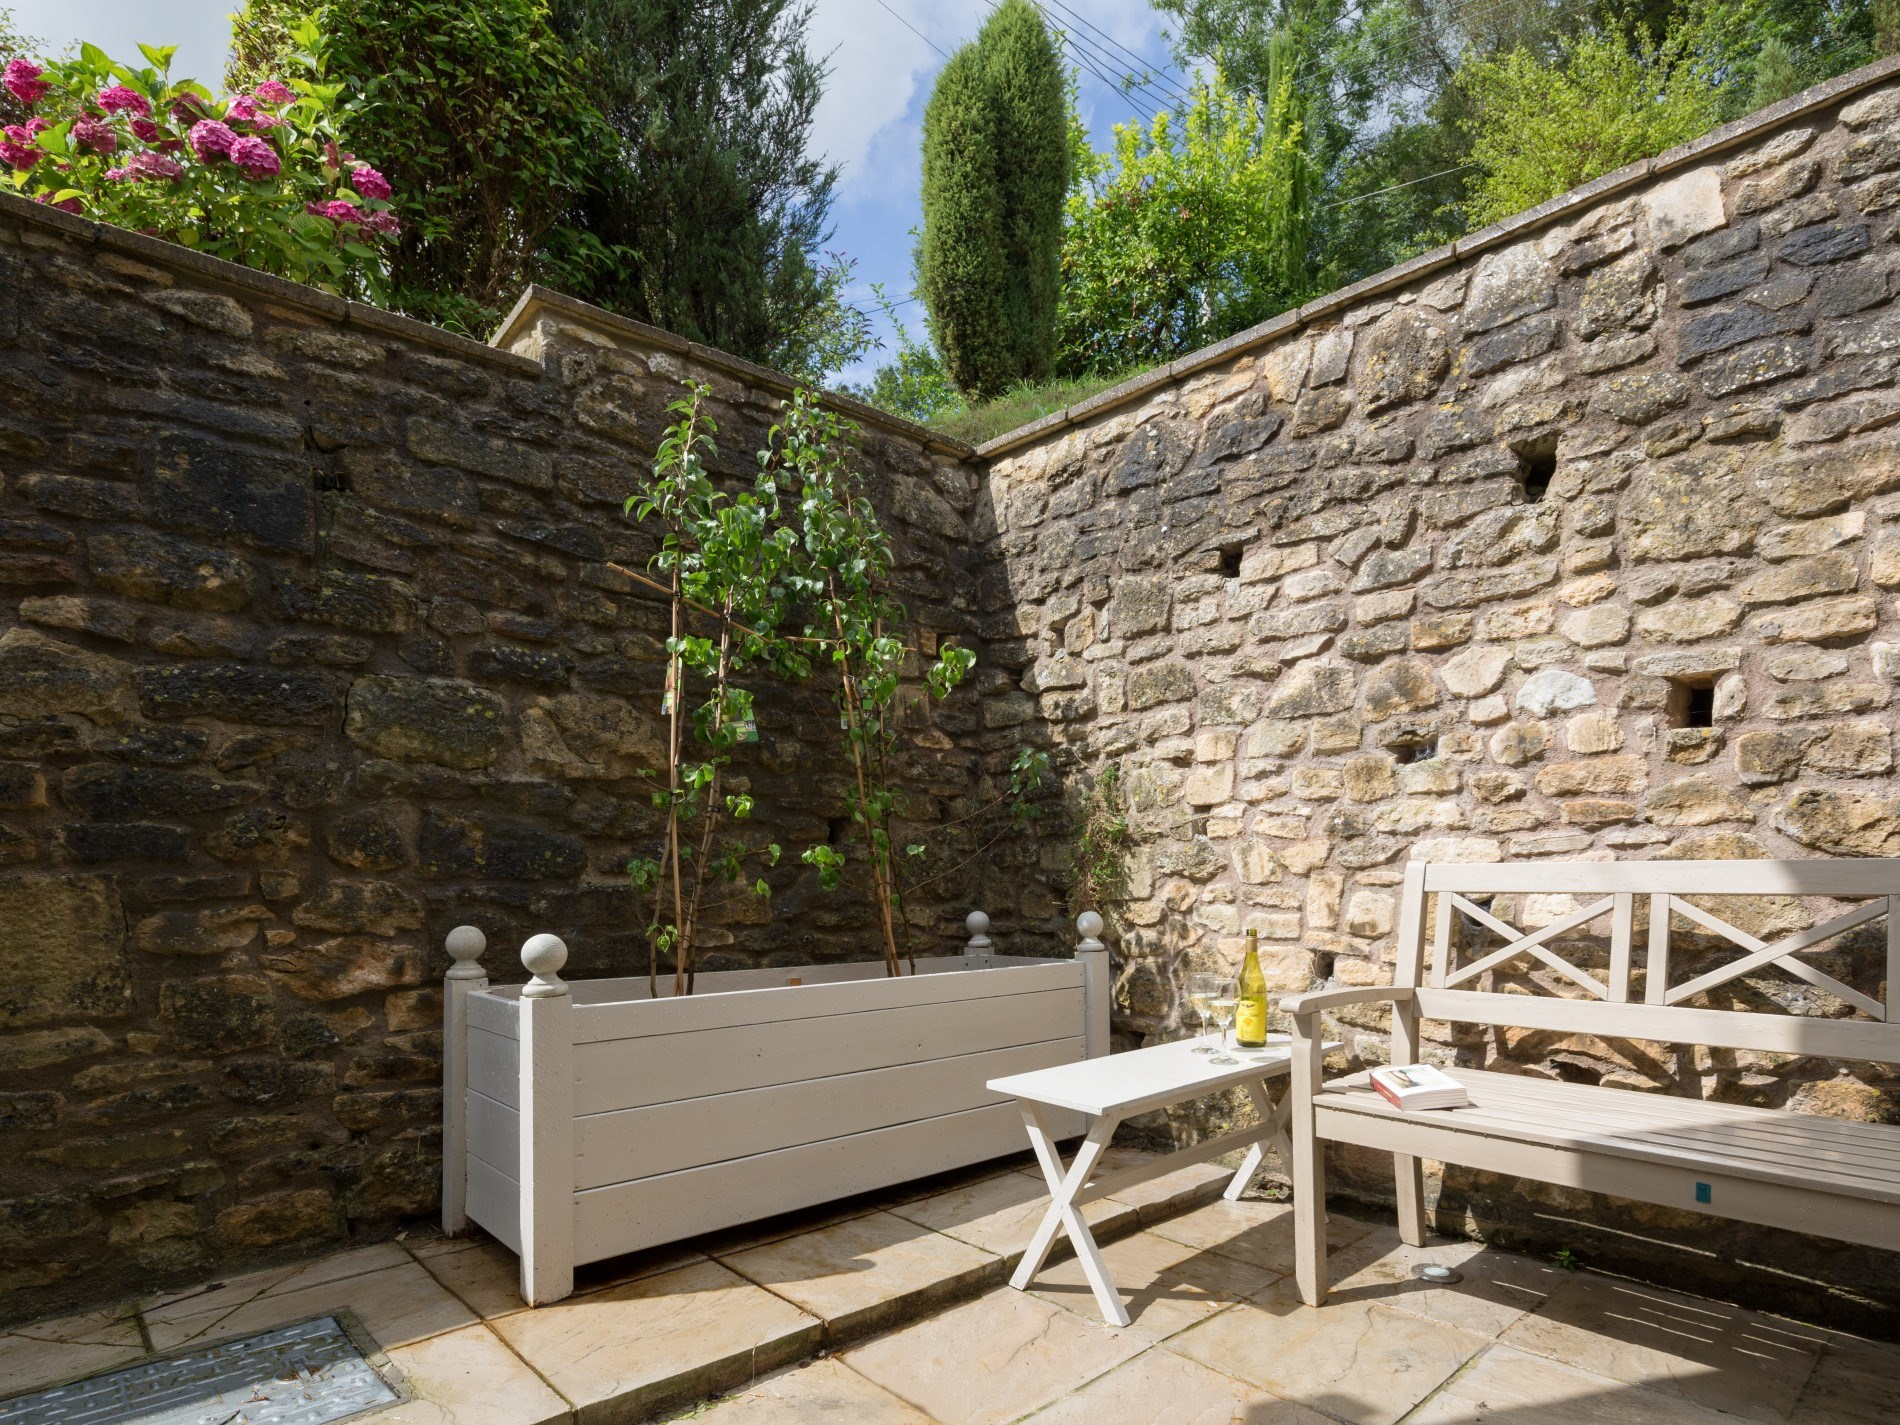 Relax in the private courtyard